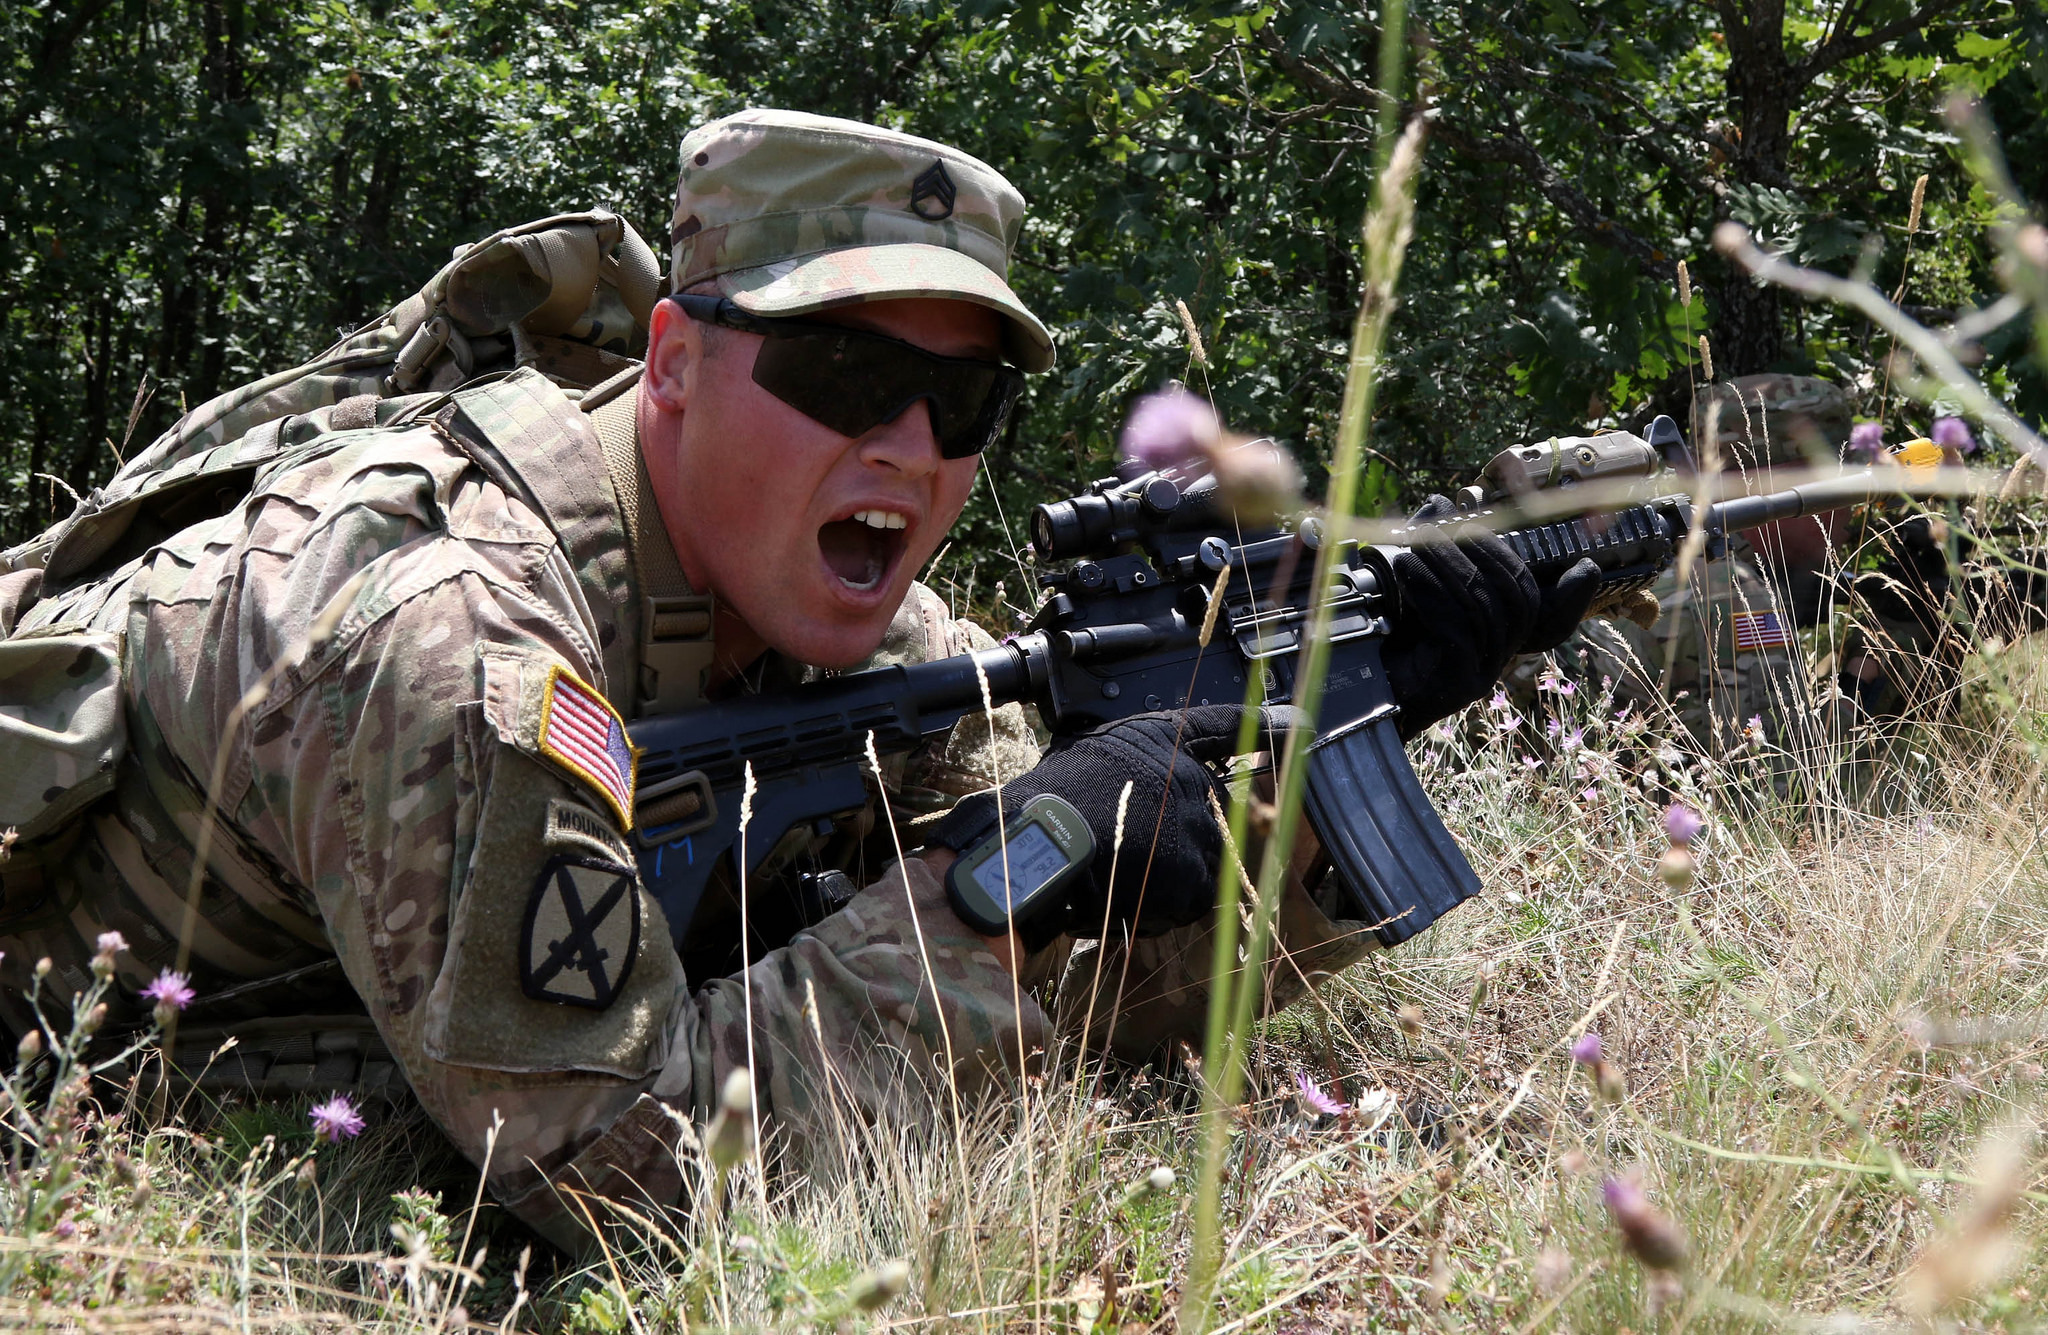 Staff Sgt. Daniel Dalton, squad leader with the 1st Battalion, 41st Infantry Regiment, 2nd Infantry Brigade Combat Team, shouts directions to his team during a squad level situational training exercise held in Dumnice, Kosovo, July 25, 2016. The purpose of the exercise was to train individual squad movements in preparation for a larger scale operation deemed Iron Eagle, later this year. (U.S. Army photo by: Staff Sgt. Thomas Duval, Multinational Battle Group-East Public Affairs)